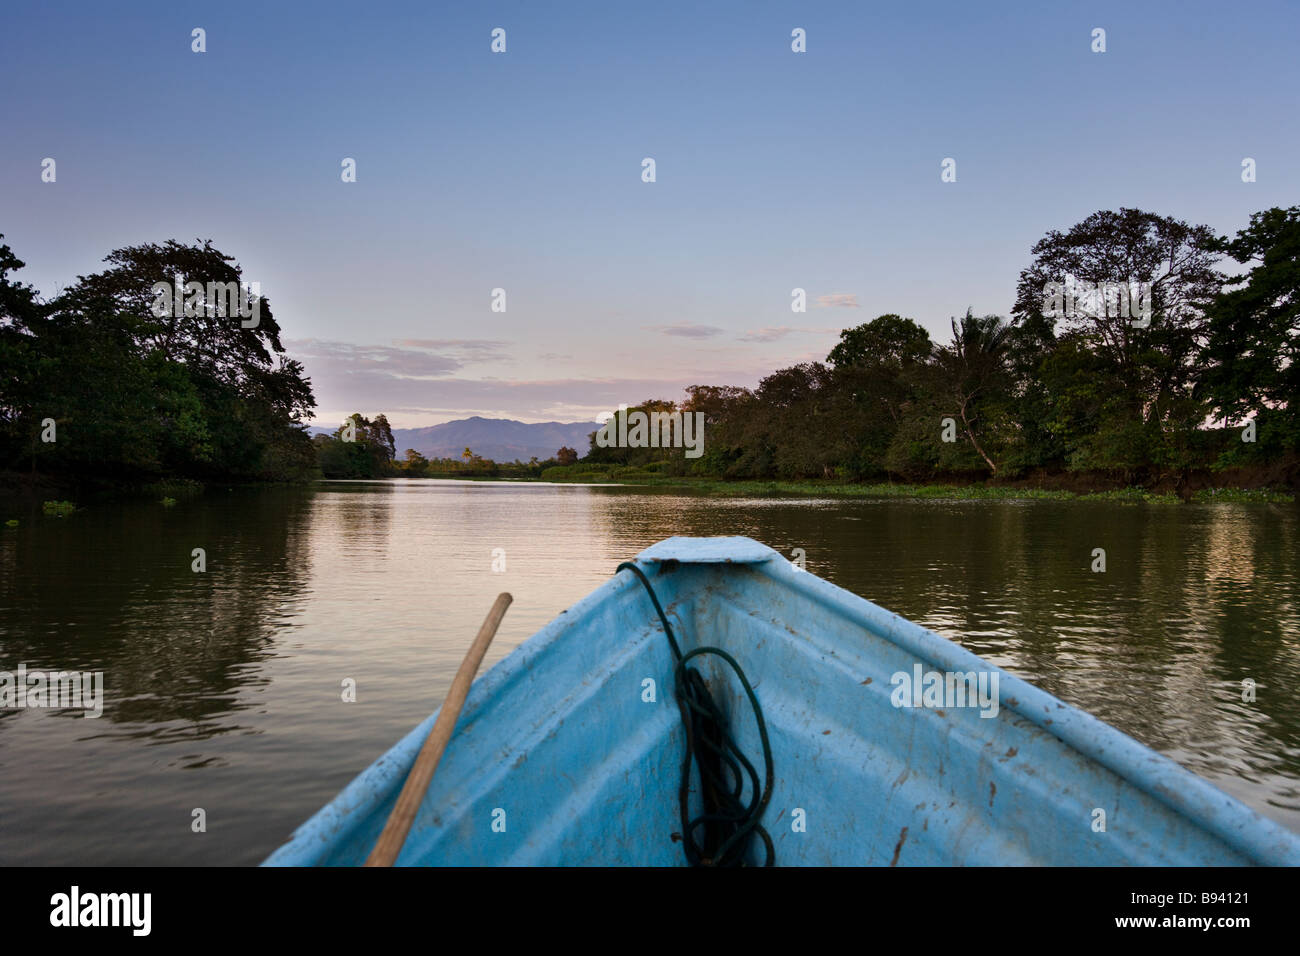 A boat going down the Sierpe River, gateway to Costa Rica's Corcovado National Park, with mountains in the background - Stock Image